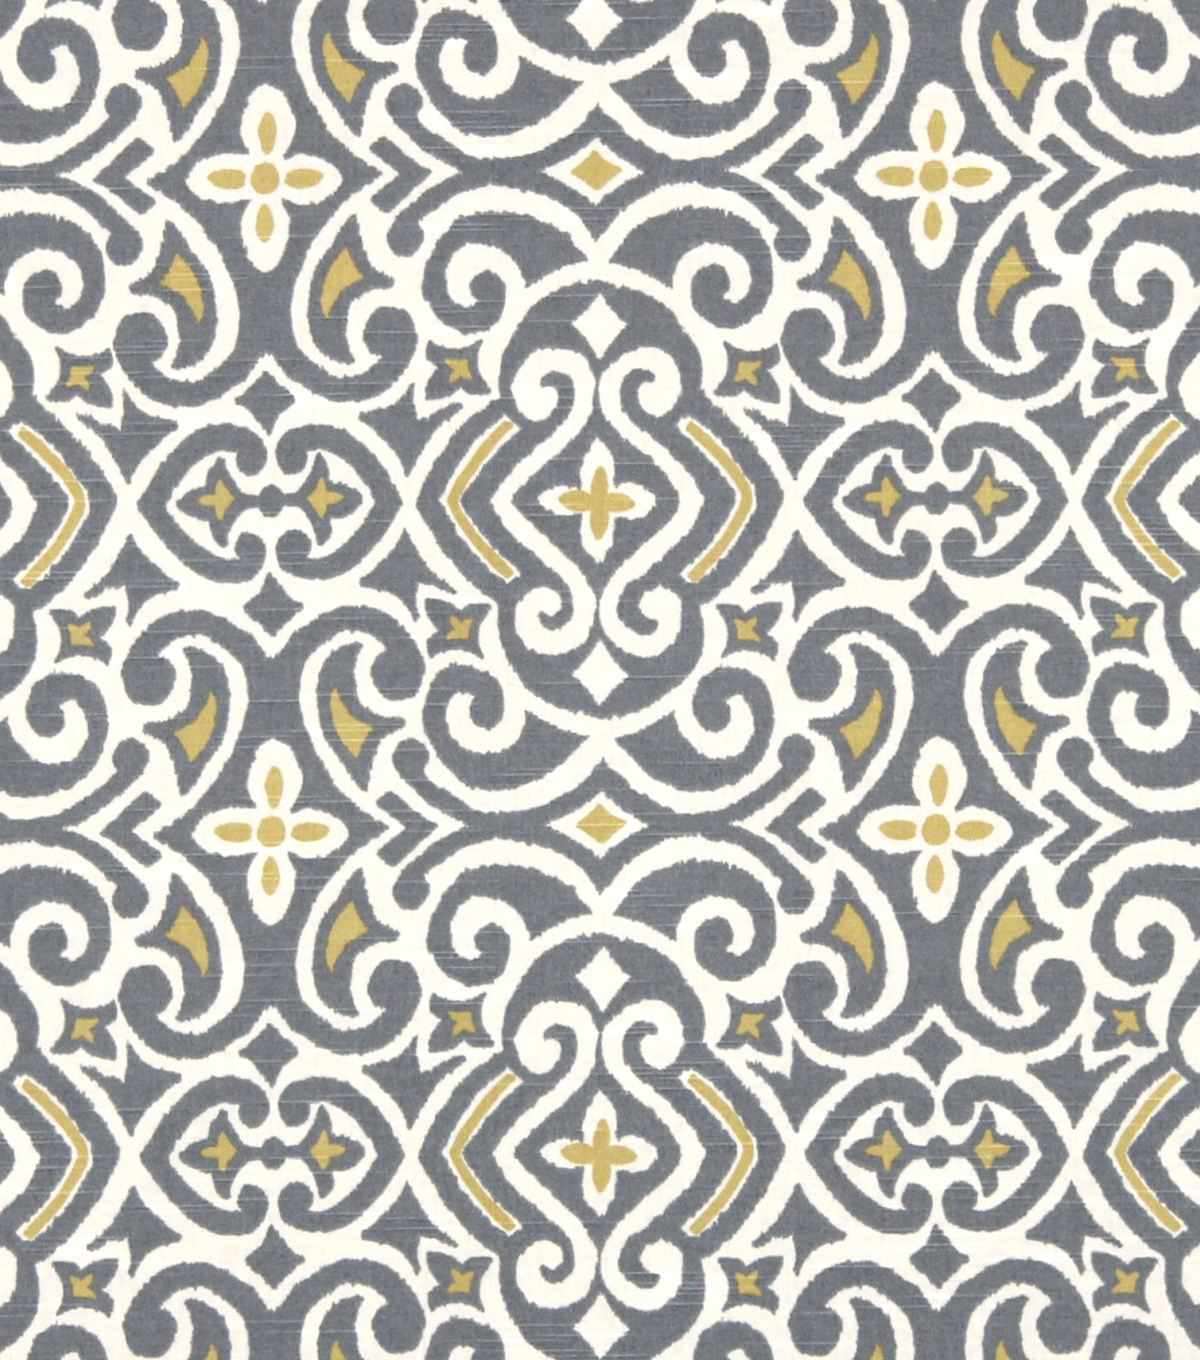 "Home Decor 8""x8"" Fabric Swatch-Robert Allen New Damask Greystone"